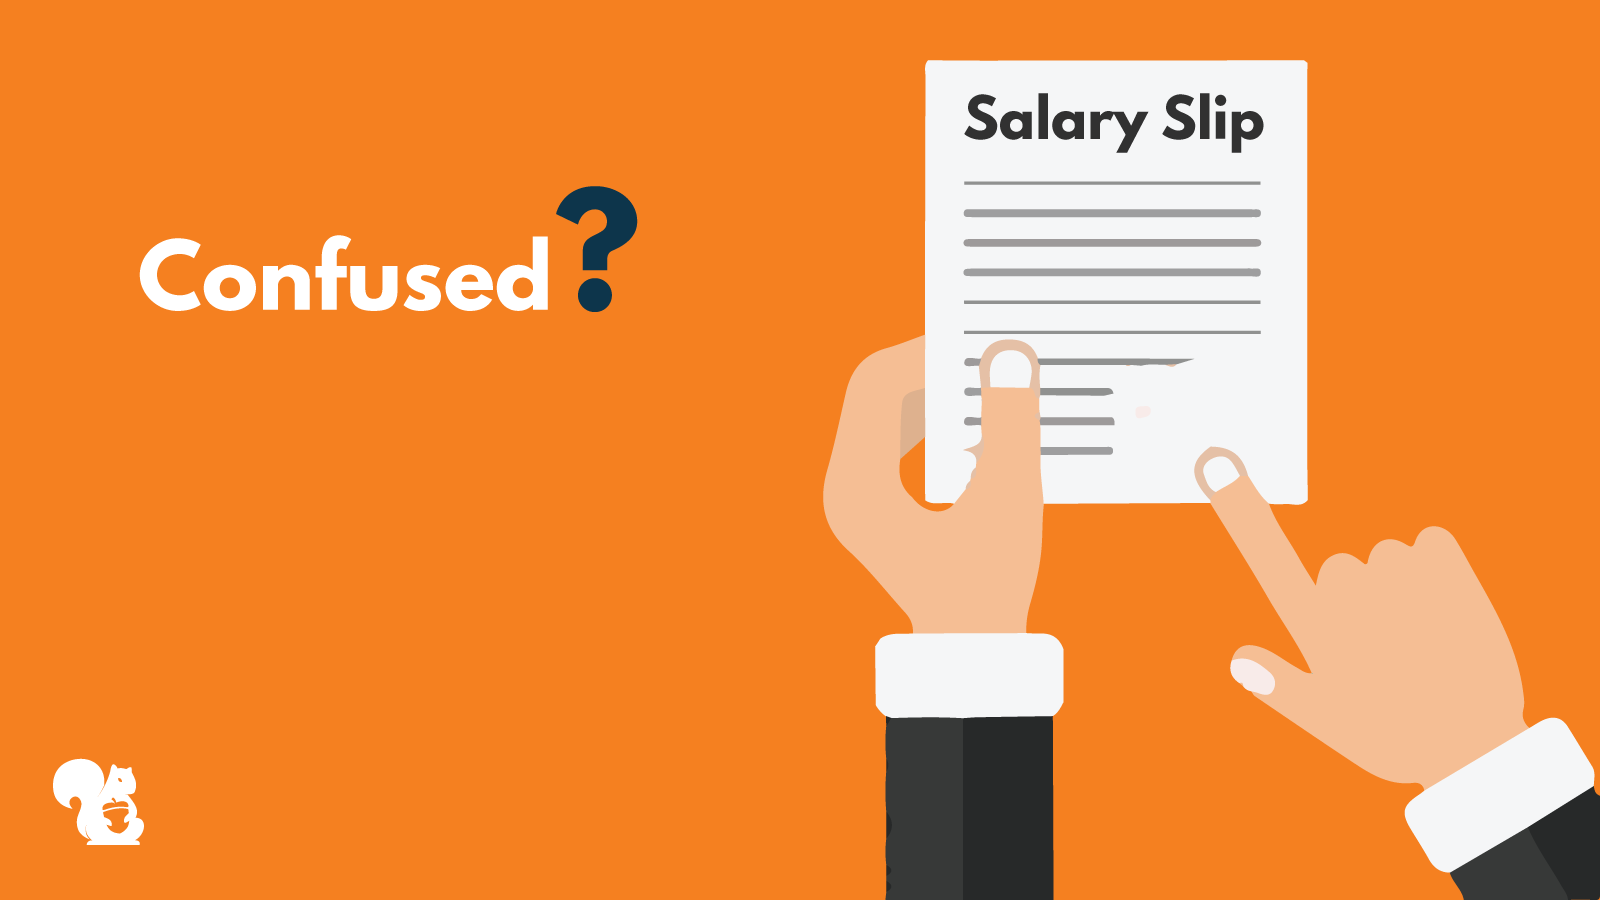 Indian salary slip